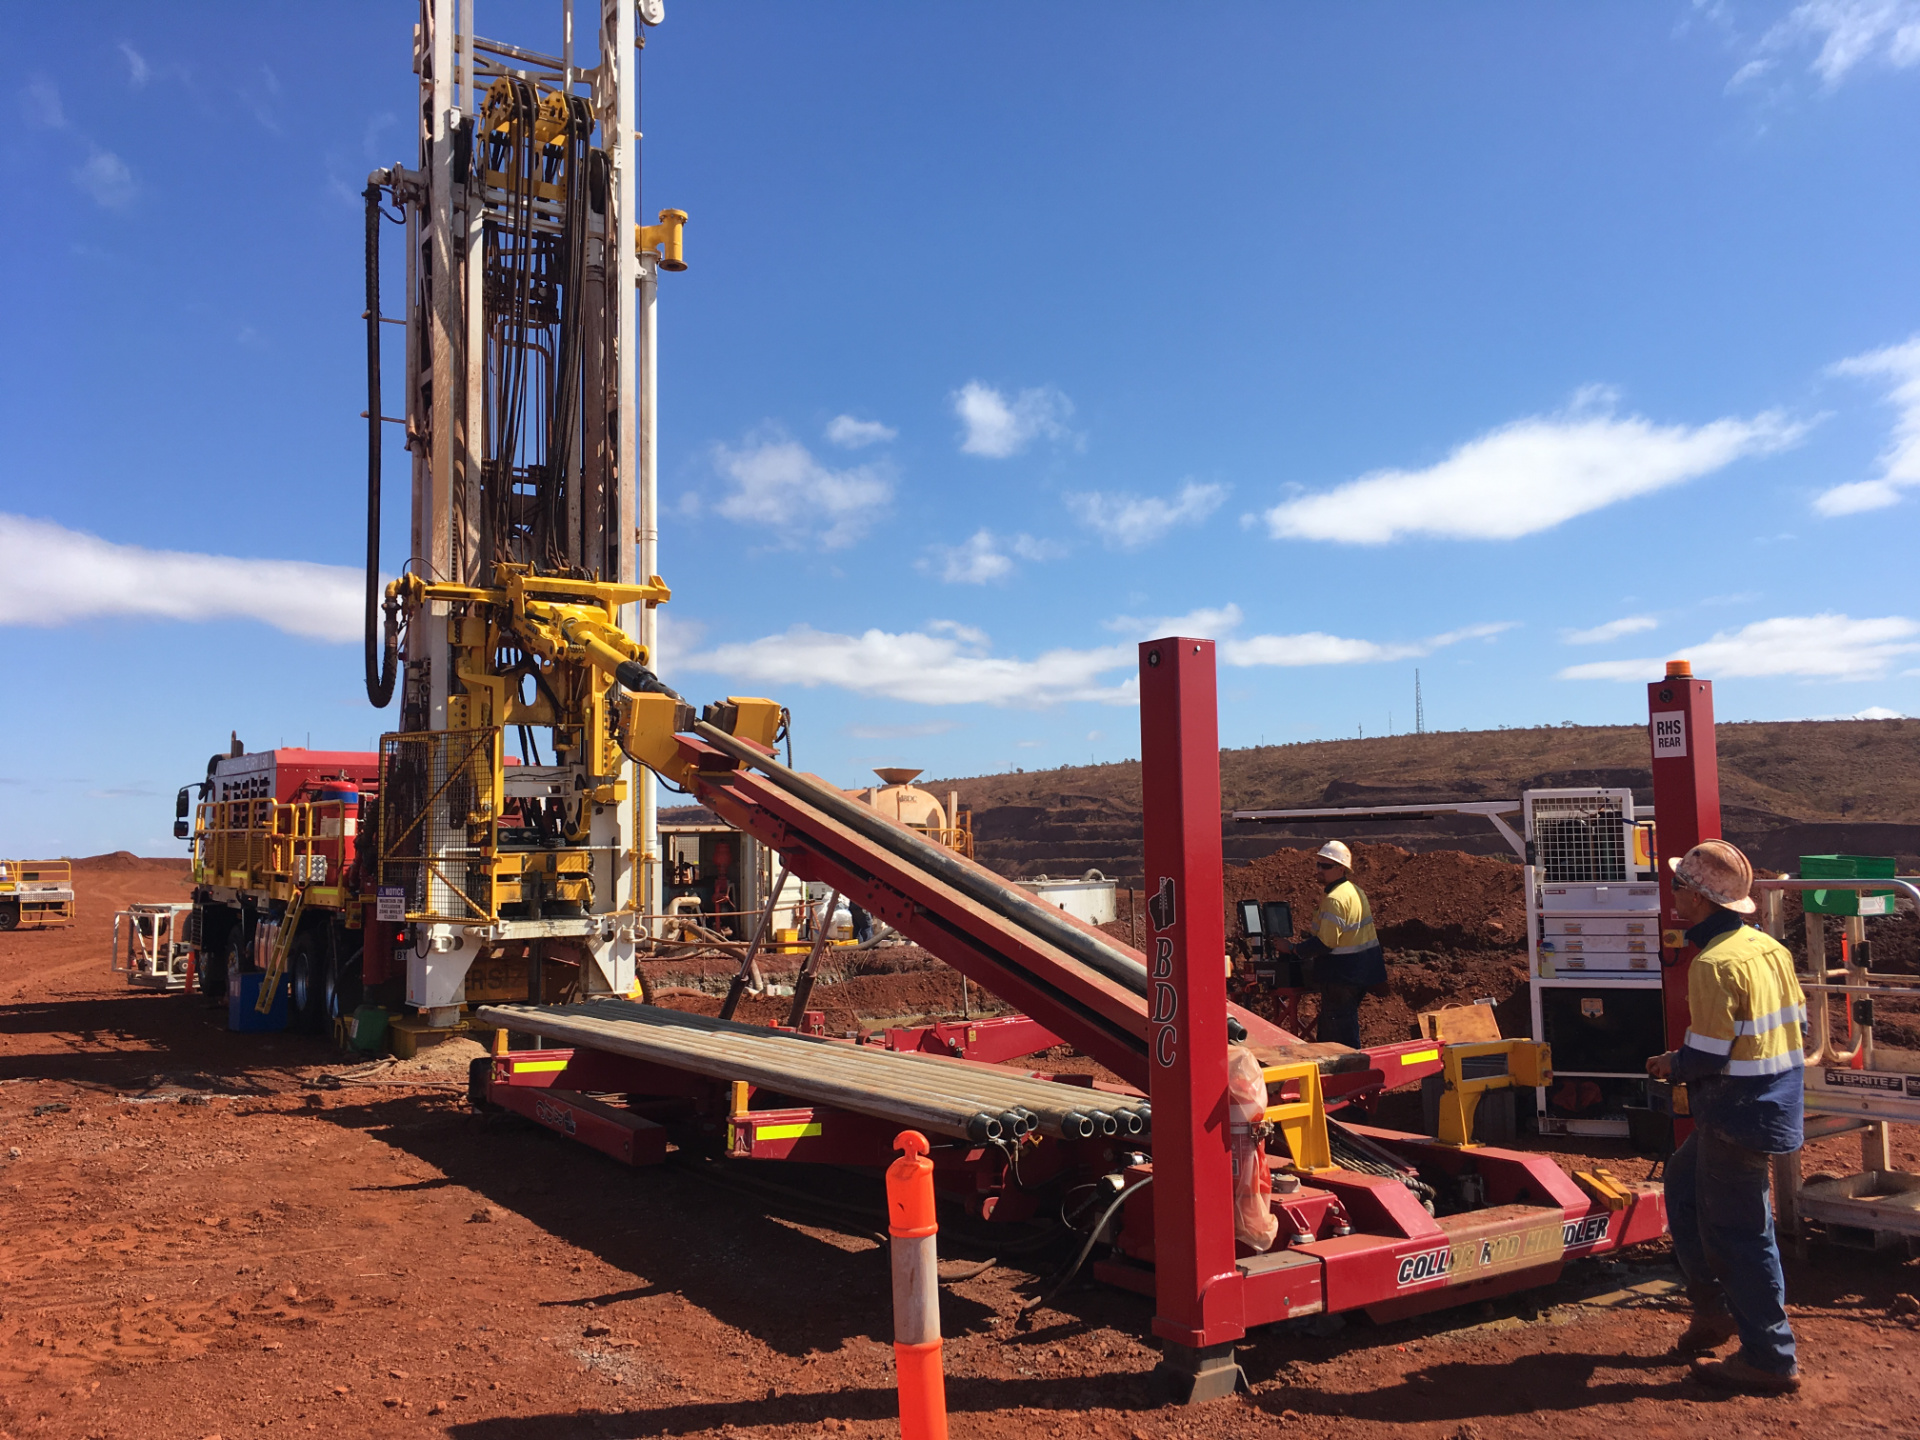 Schramm Fury 130 drilling rig on-site providing aftermarket services in Australia.